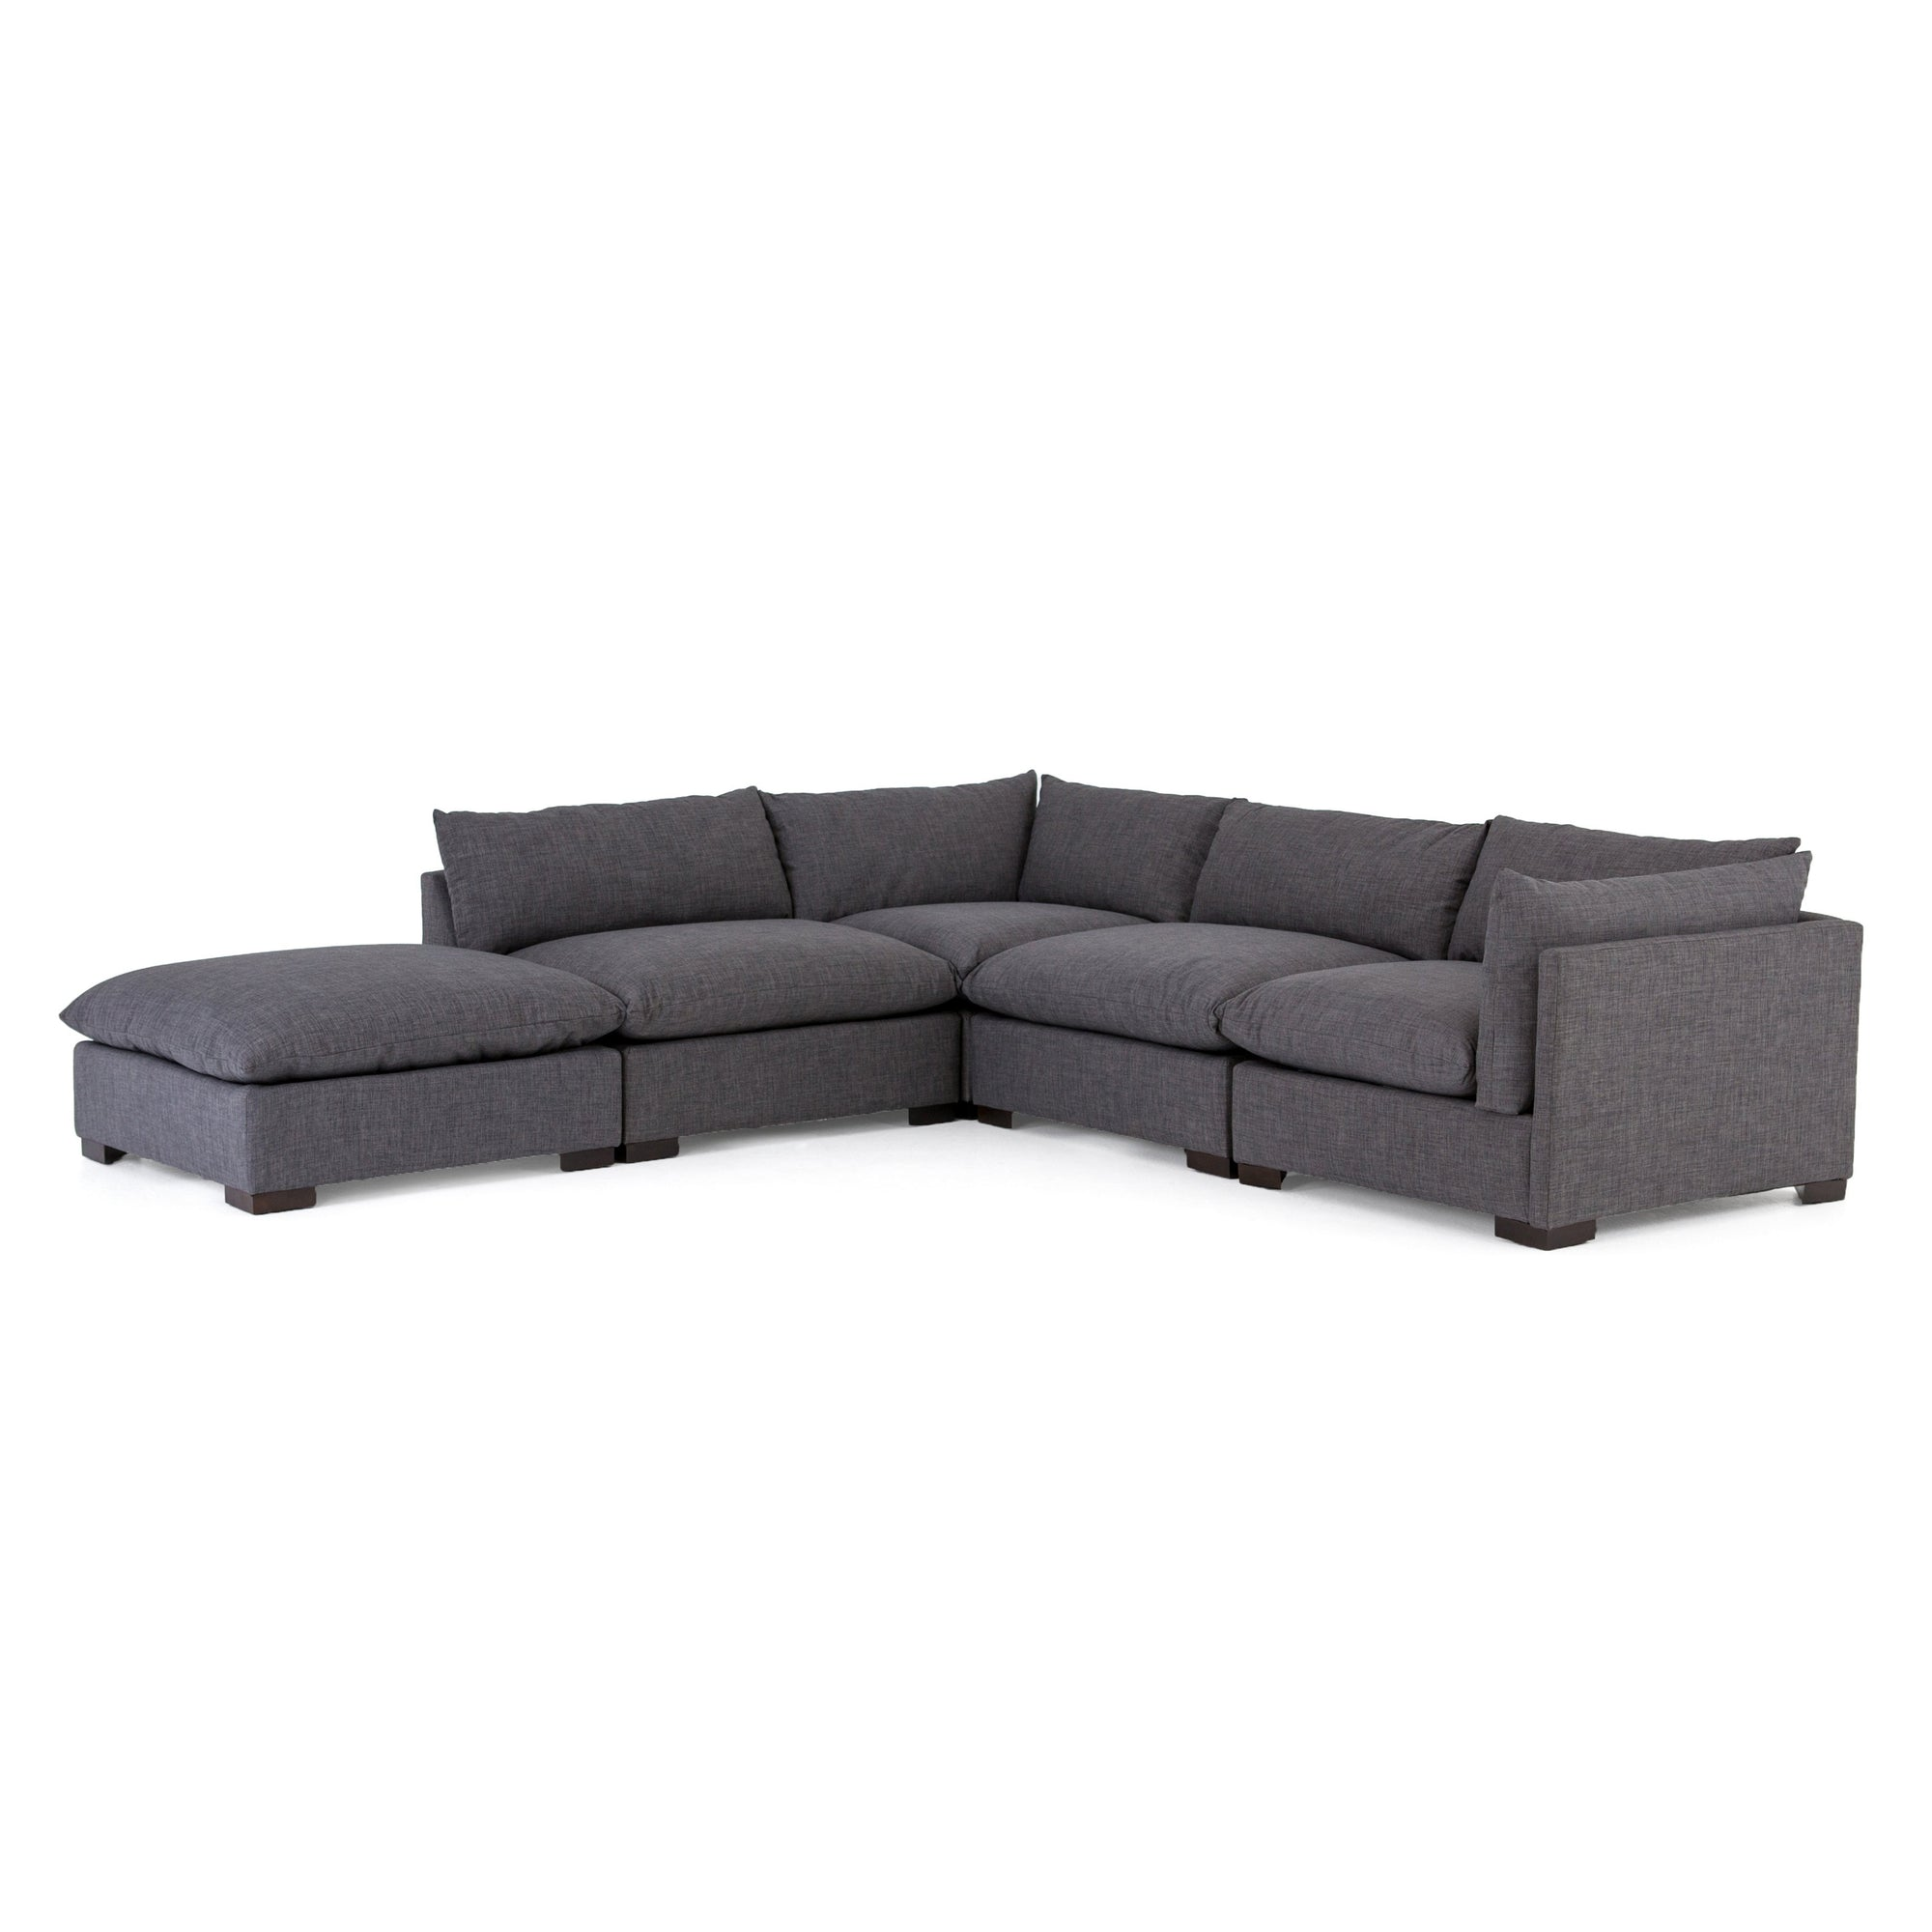 Westwood 4 - Pc Sectional W/ Ottoman - Bc